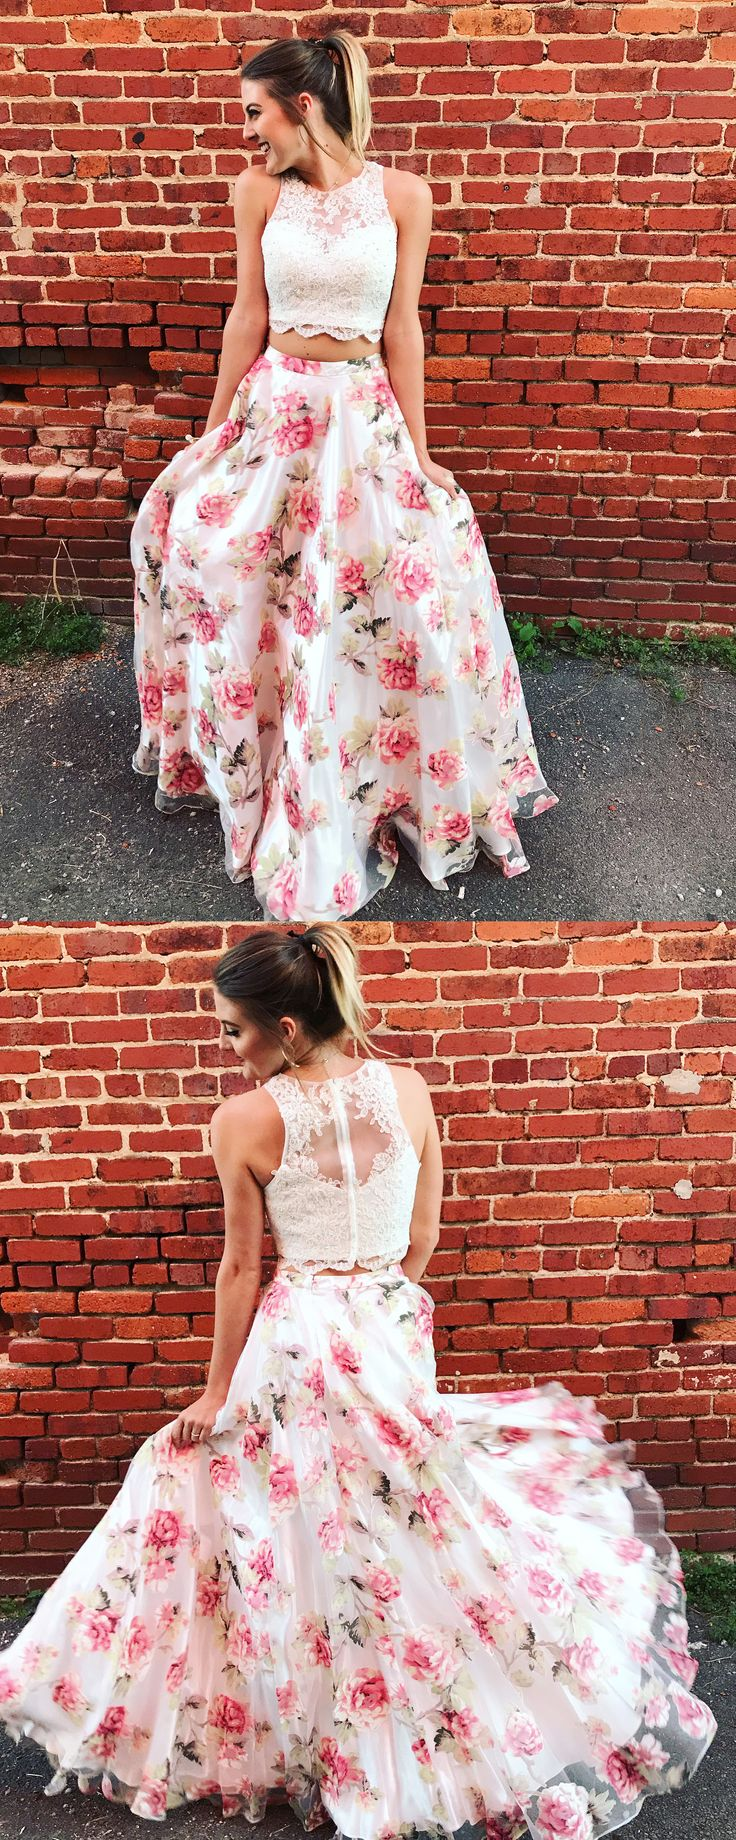 2018 dress, two piece dress, long dress, white lace and pink floral dress, spring dress